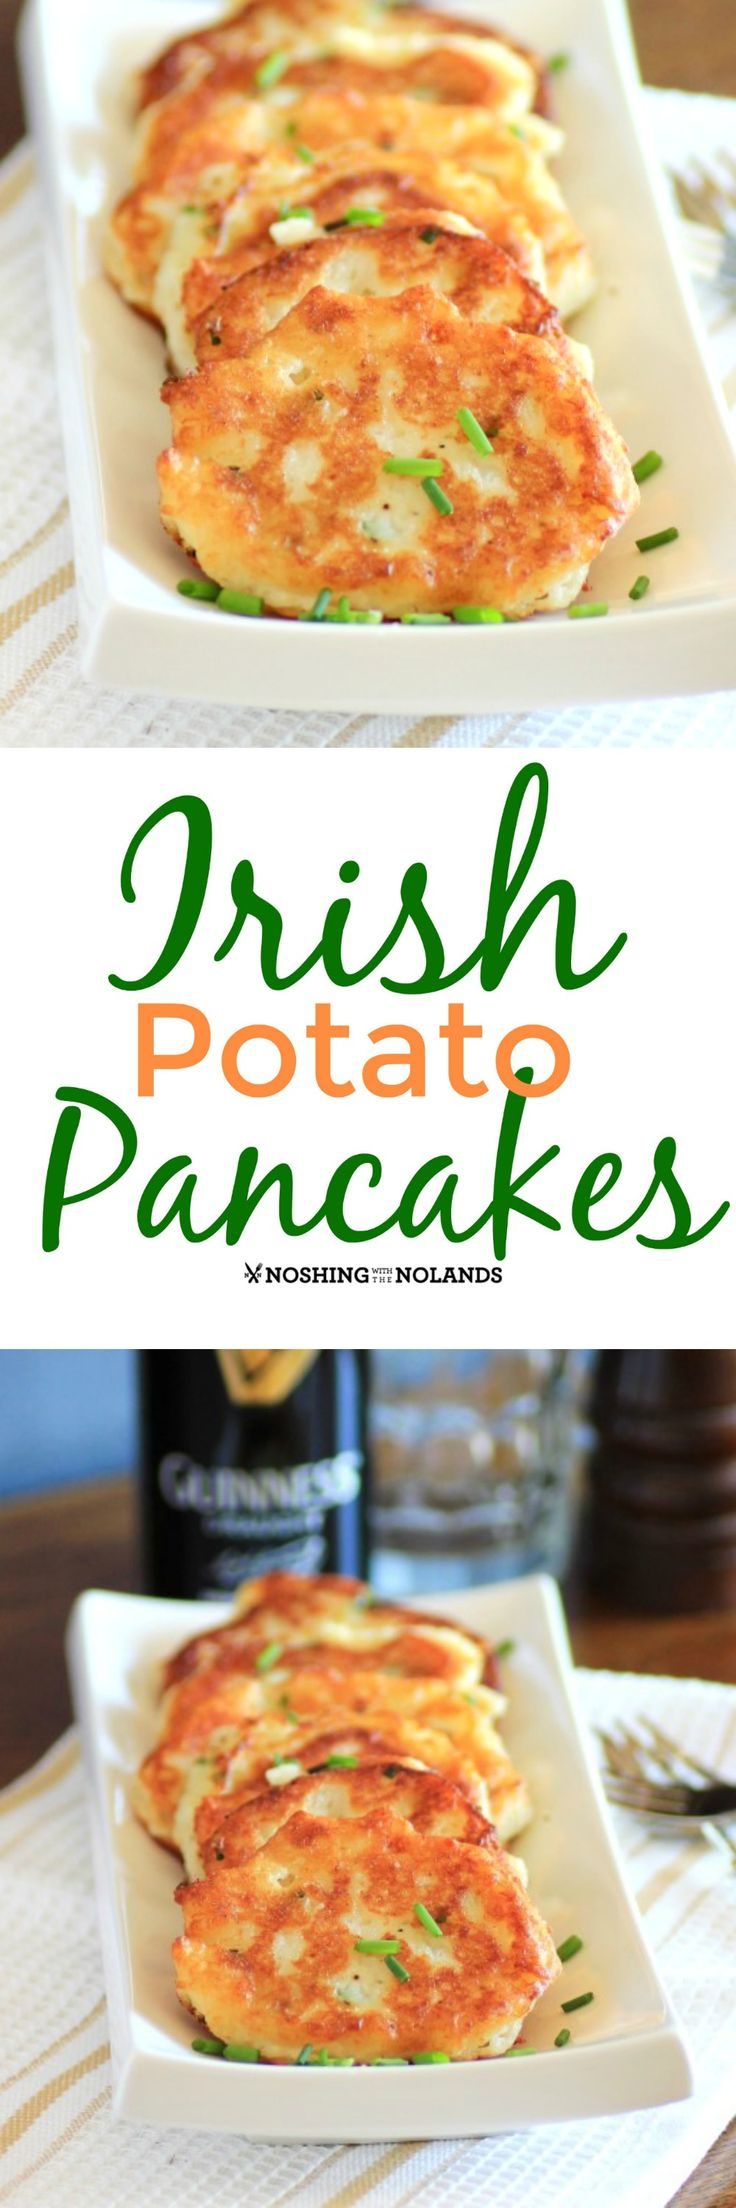 Potato Pancakes for St. Patrick's Day via @tnoland